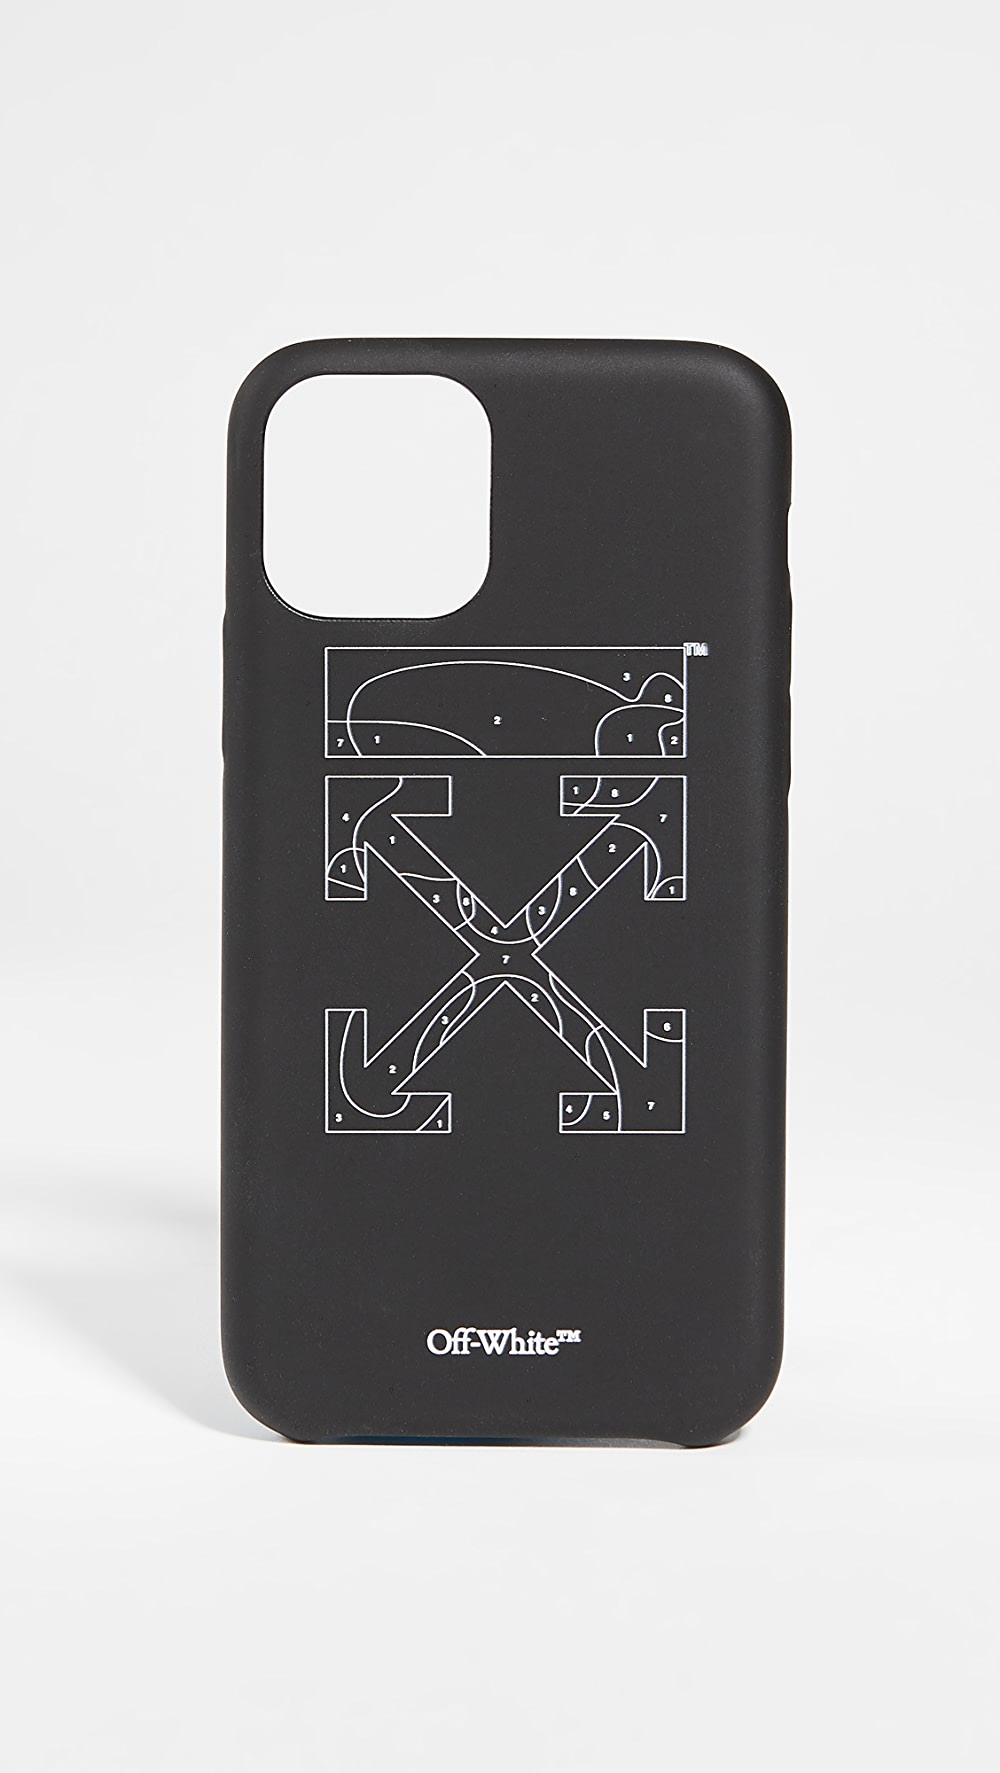 Generous Off-white - Puzzle Iphone 11 Pro Case Removing Obstruction